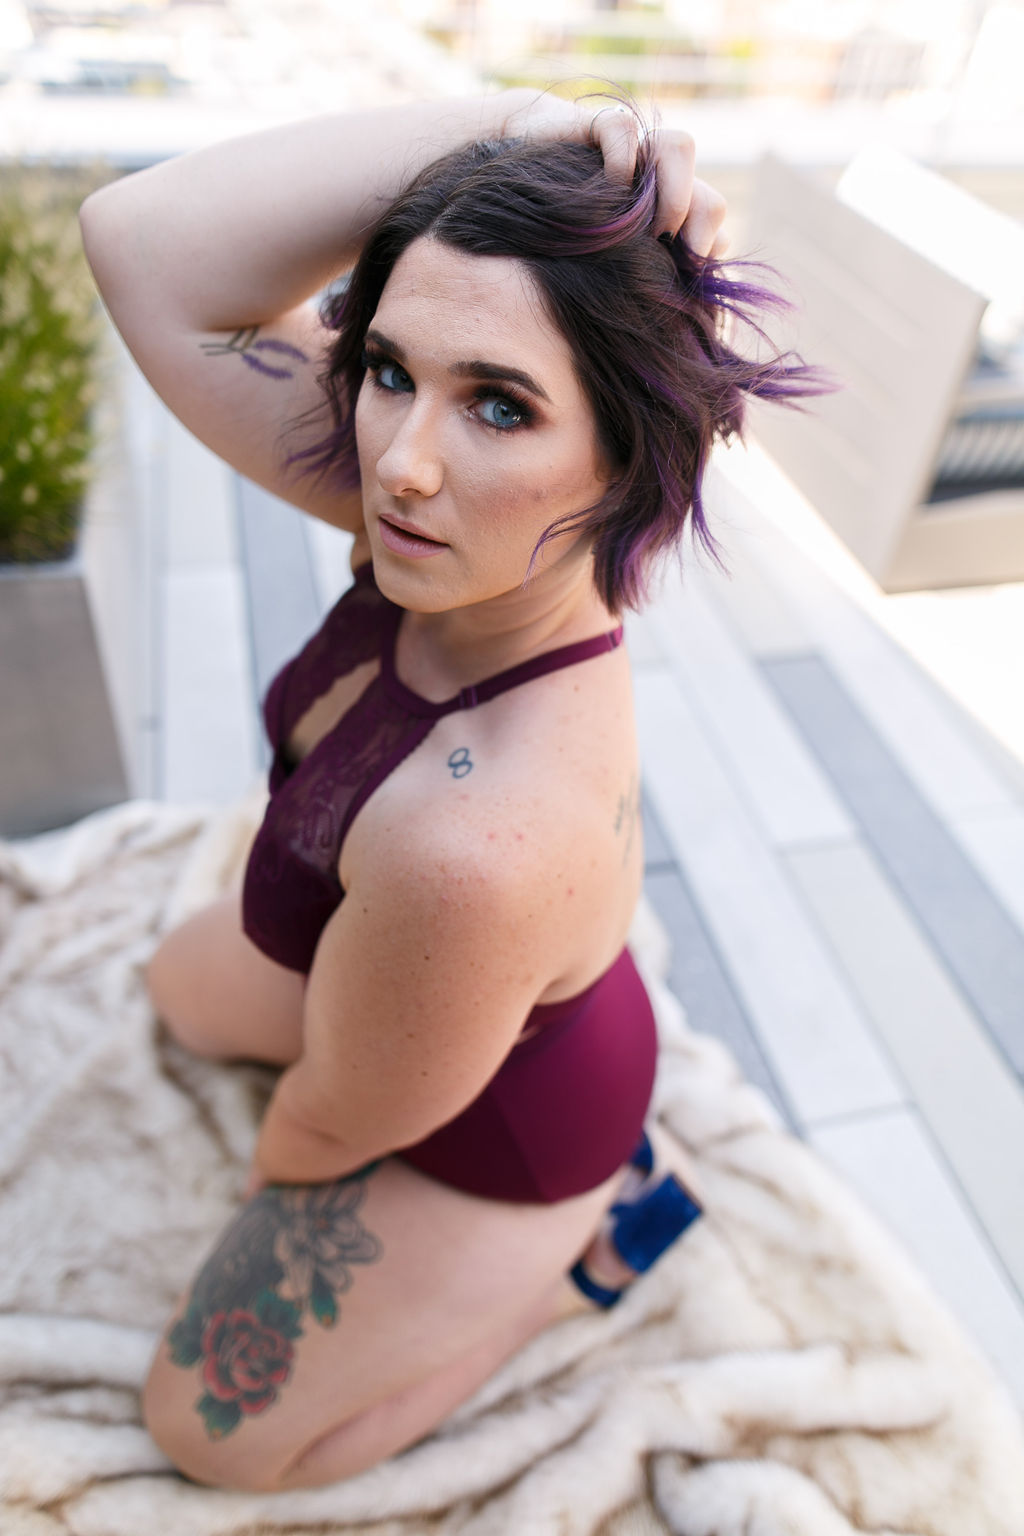 Philly Outdoor Rooftop Boudoir Session by Swiger Photography 21.jpg